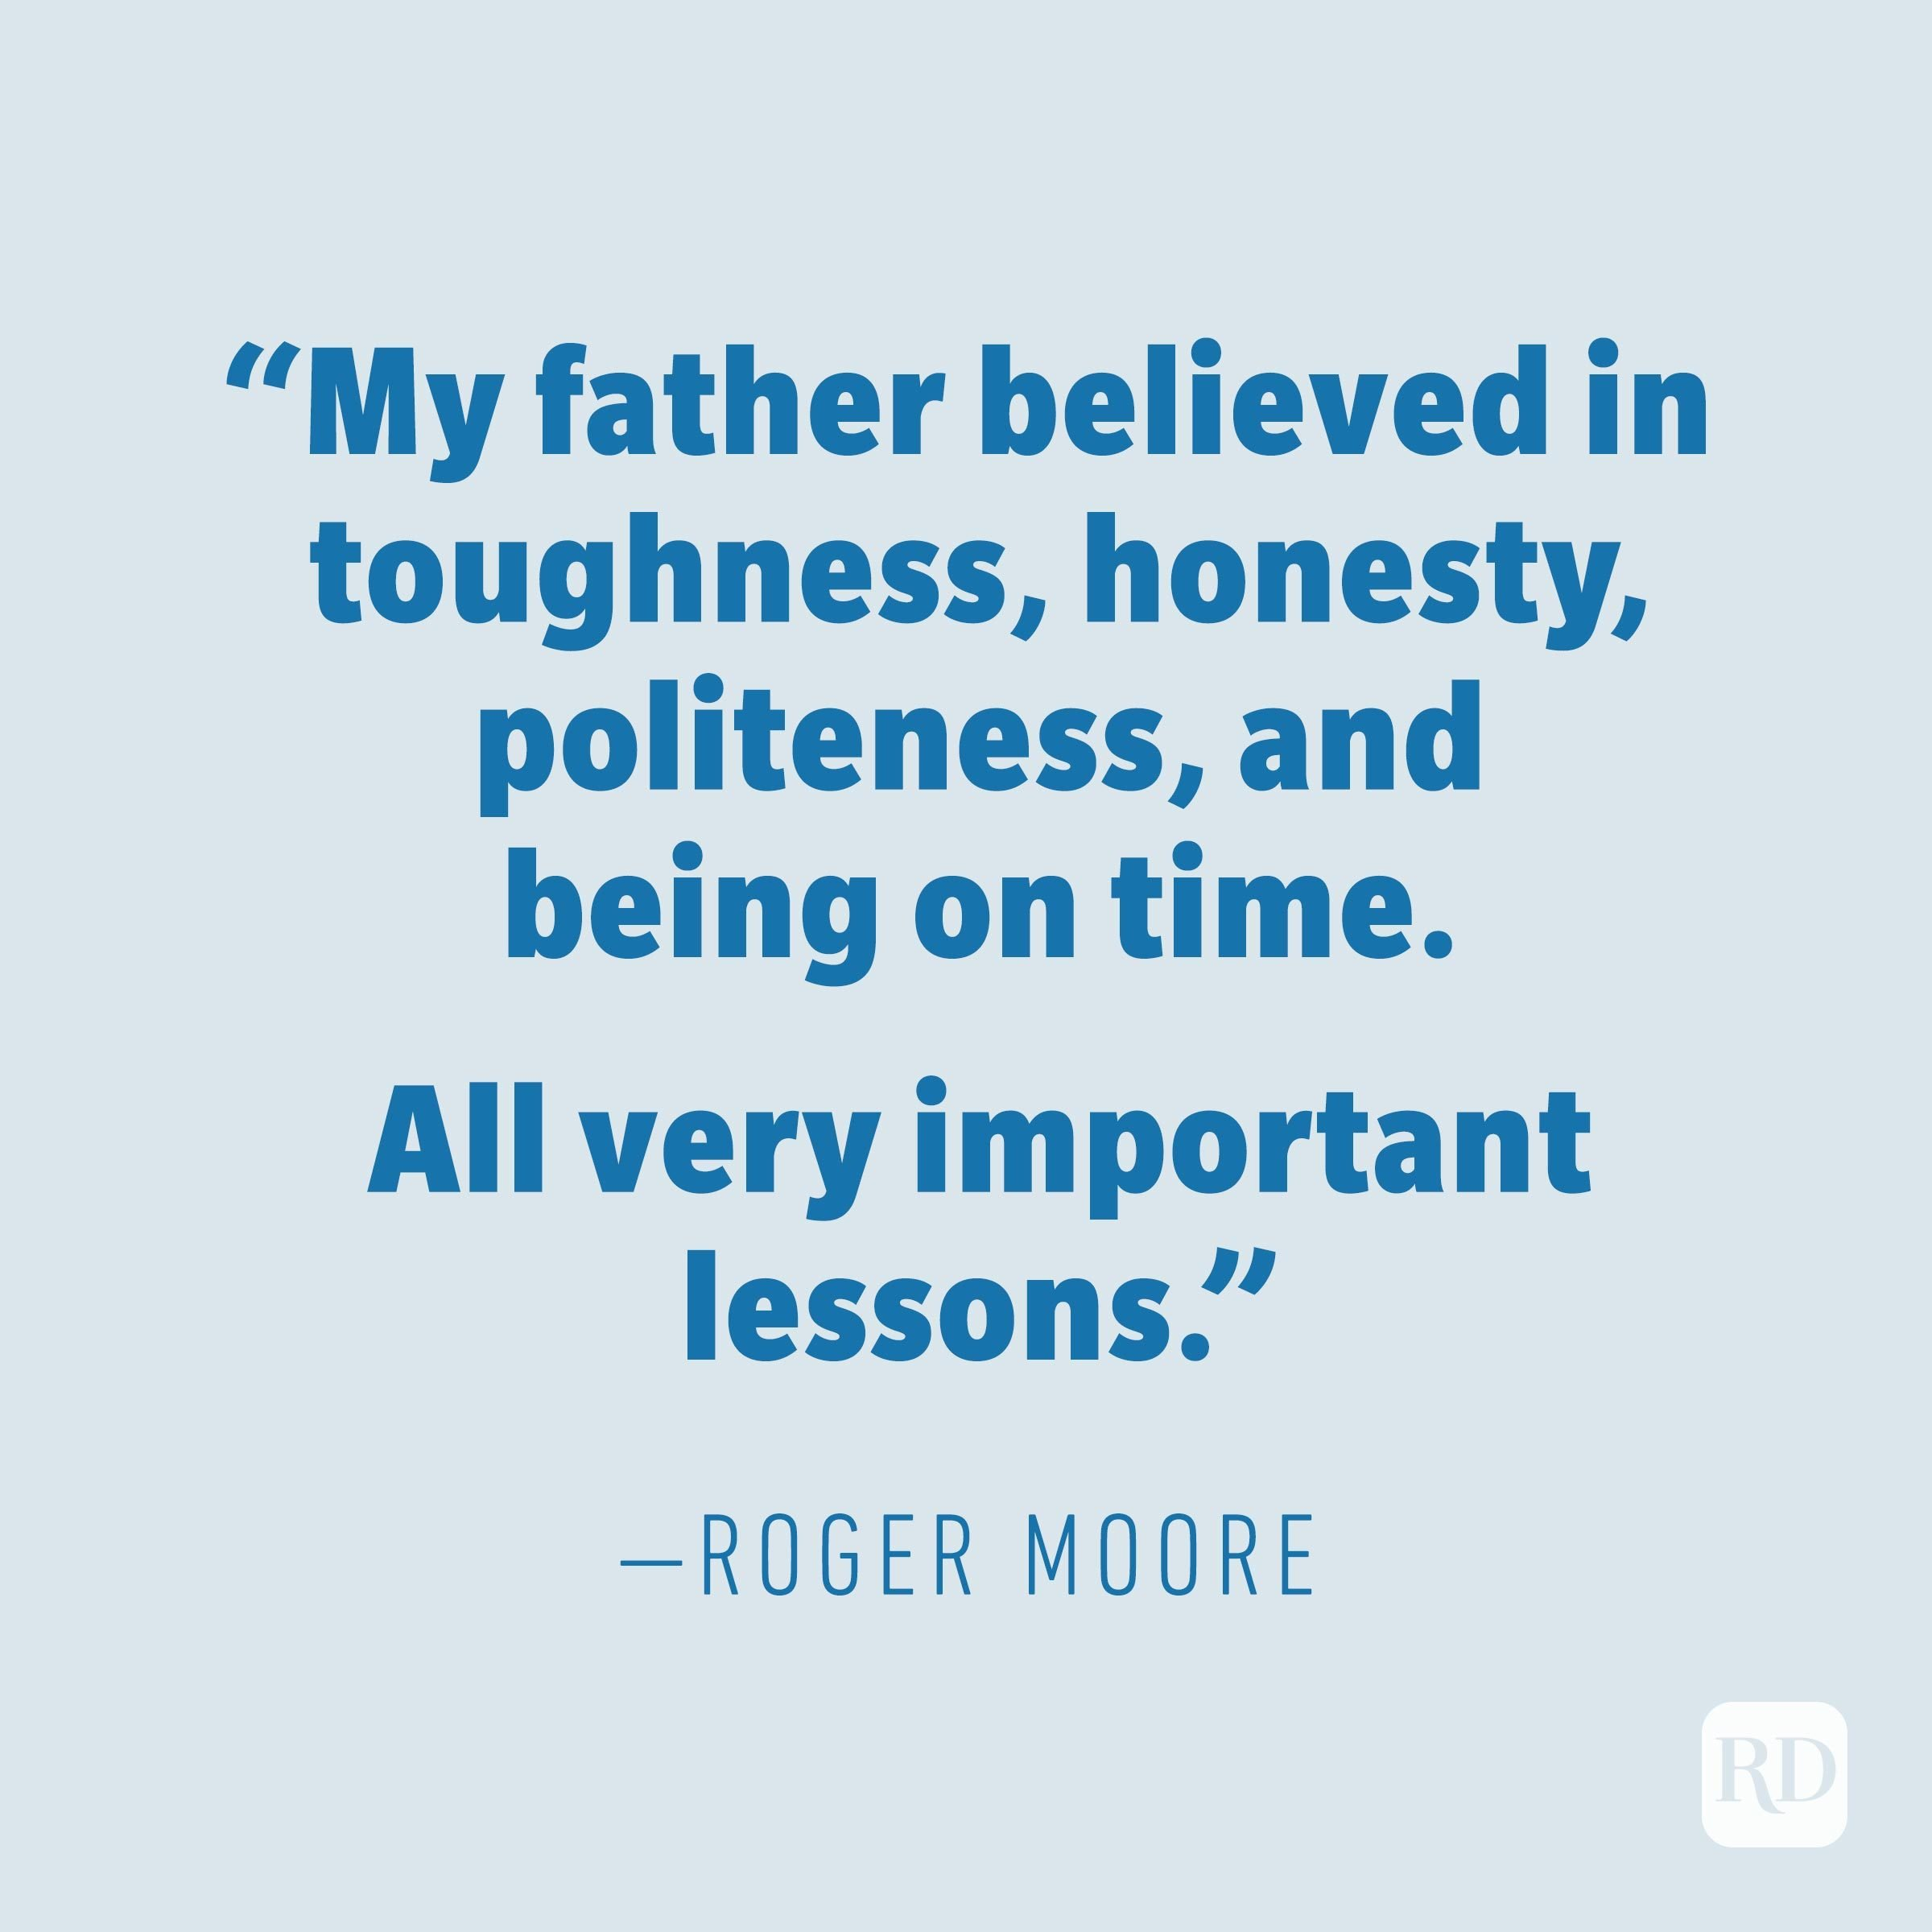 """My father believed in toughness, honesty, politeness, and being on time. All very important lessons."" —ROGER MOORE"